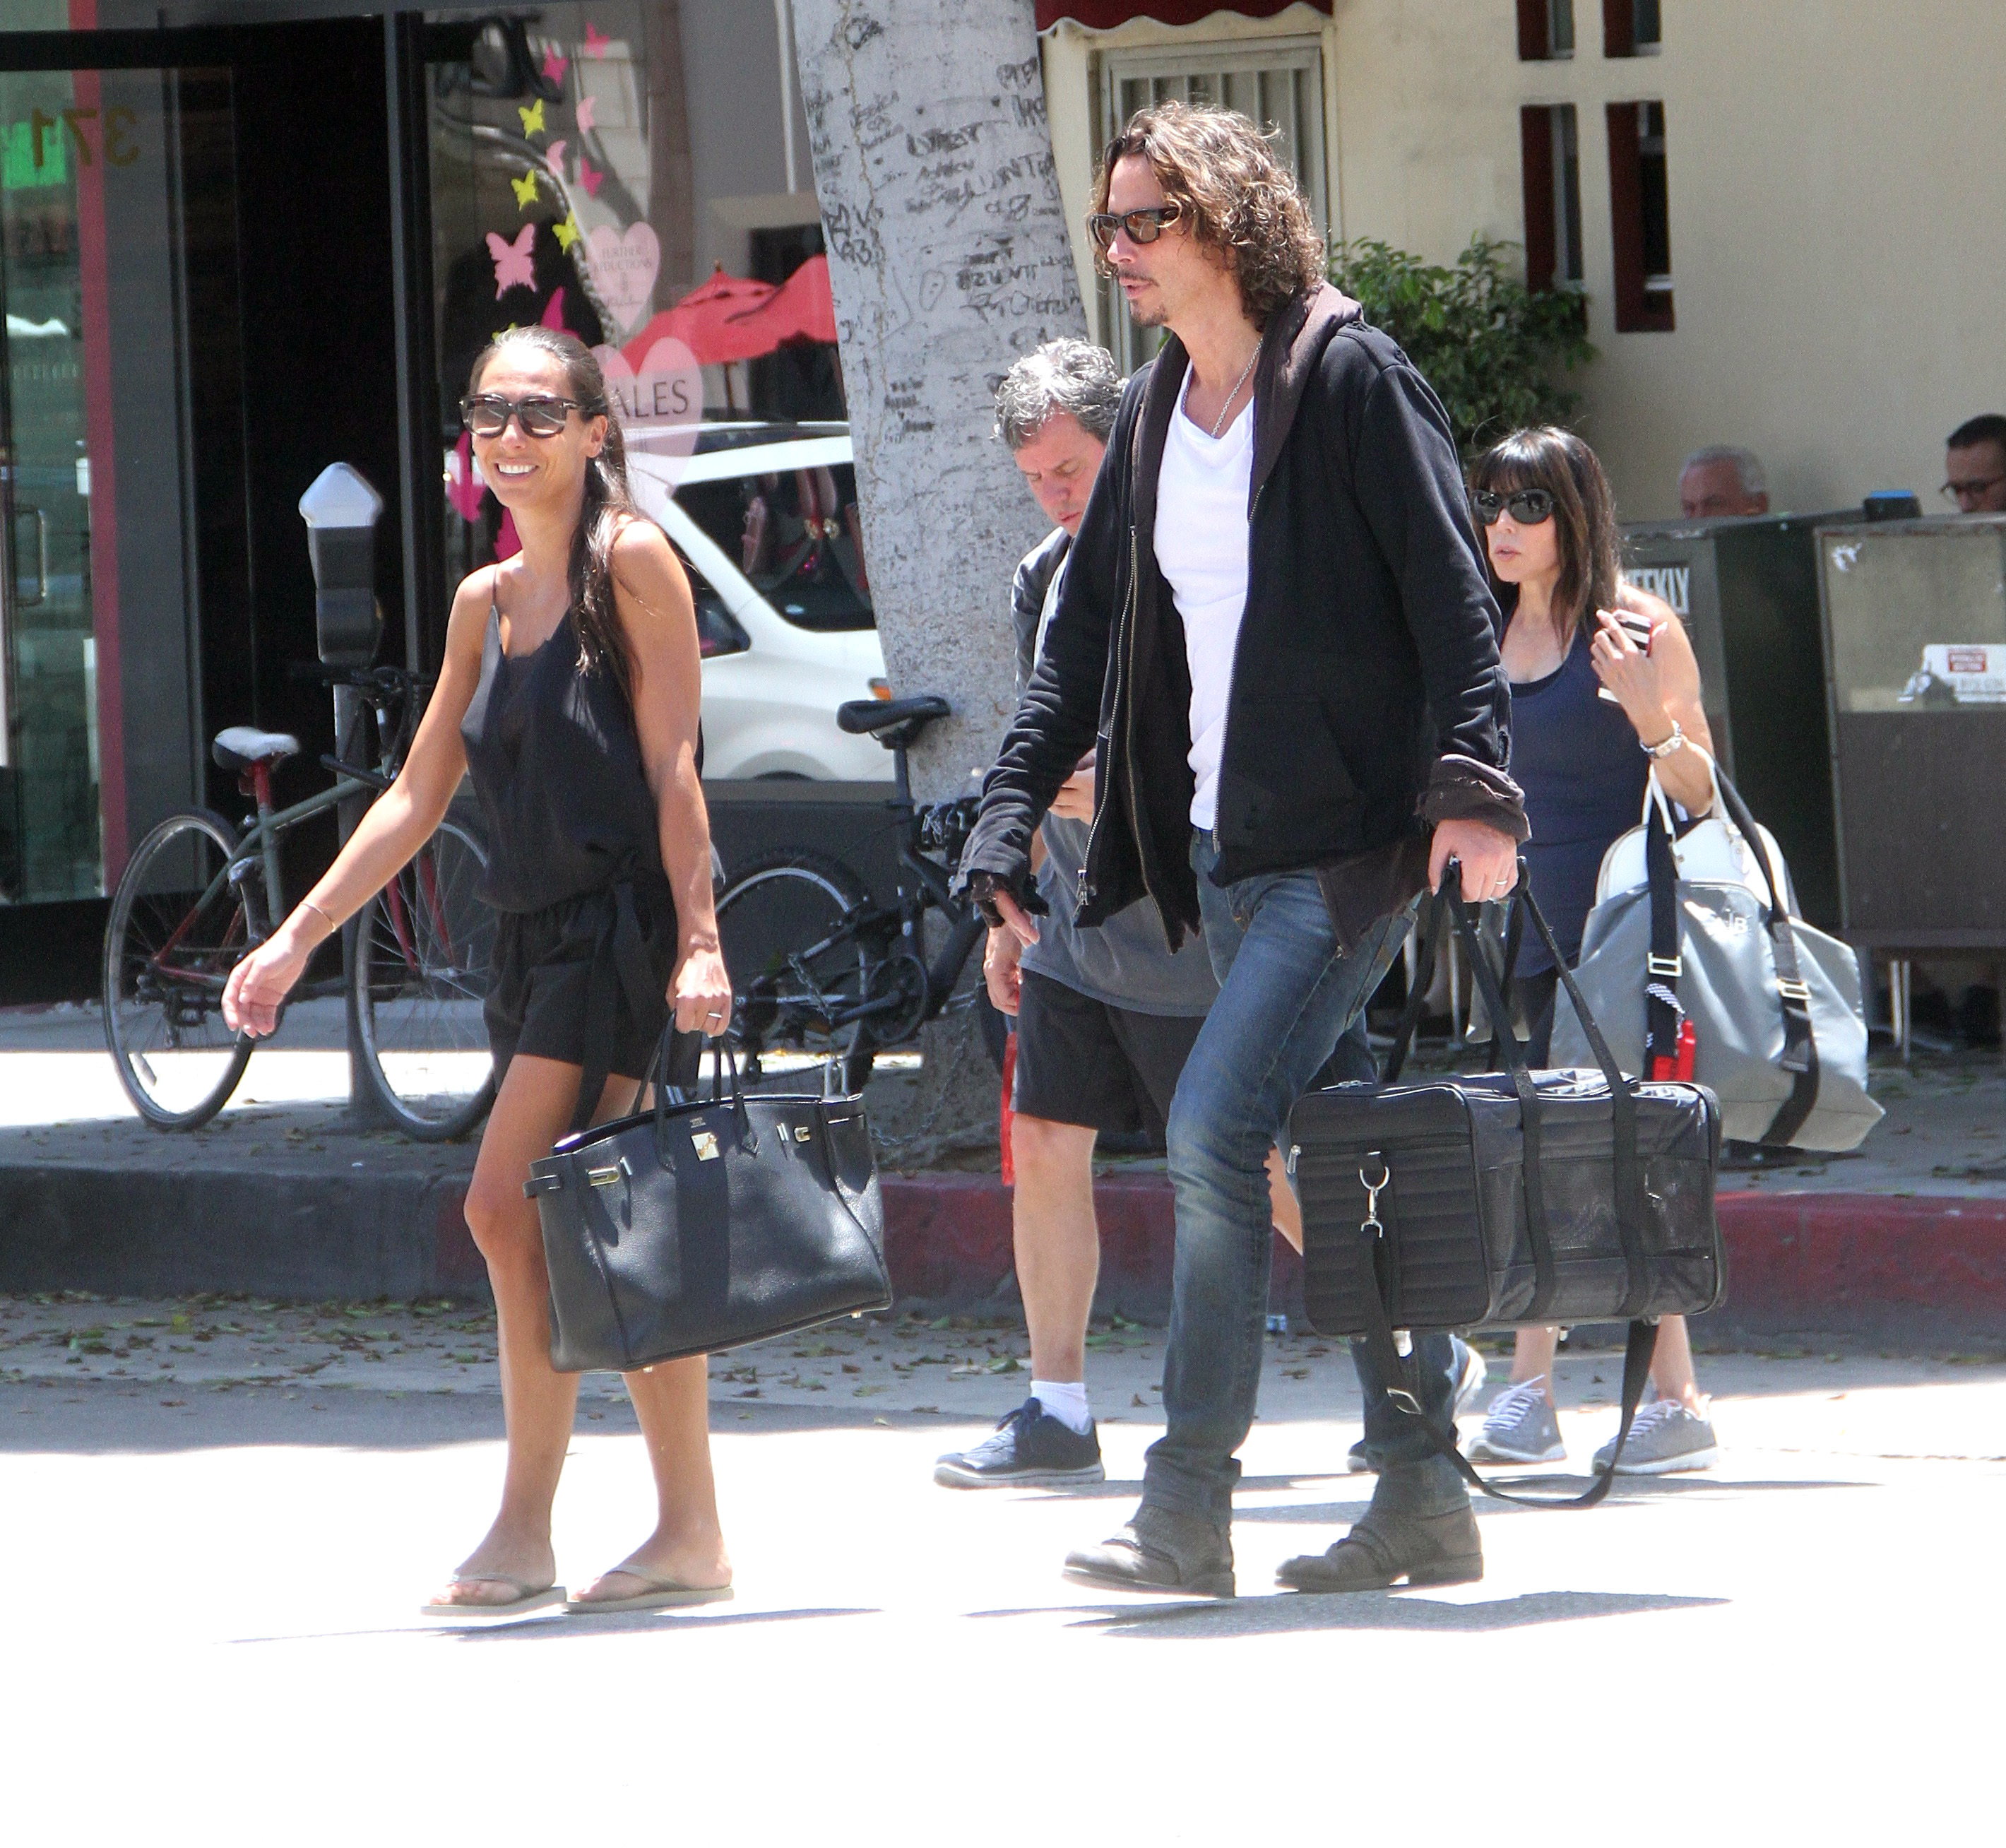 Soundgarden frontman Chris Cornell goes shopping in Beverly Hills with his wife  Featuring: Chris Cornell, Vicky Karayiannis Where: Los Angeles, California, United States When: 30 Jul 2015 Credit: WENN.com